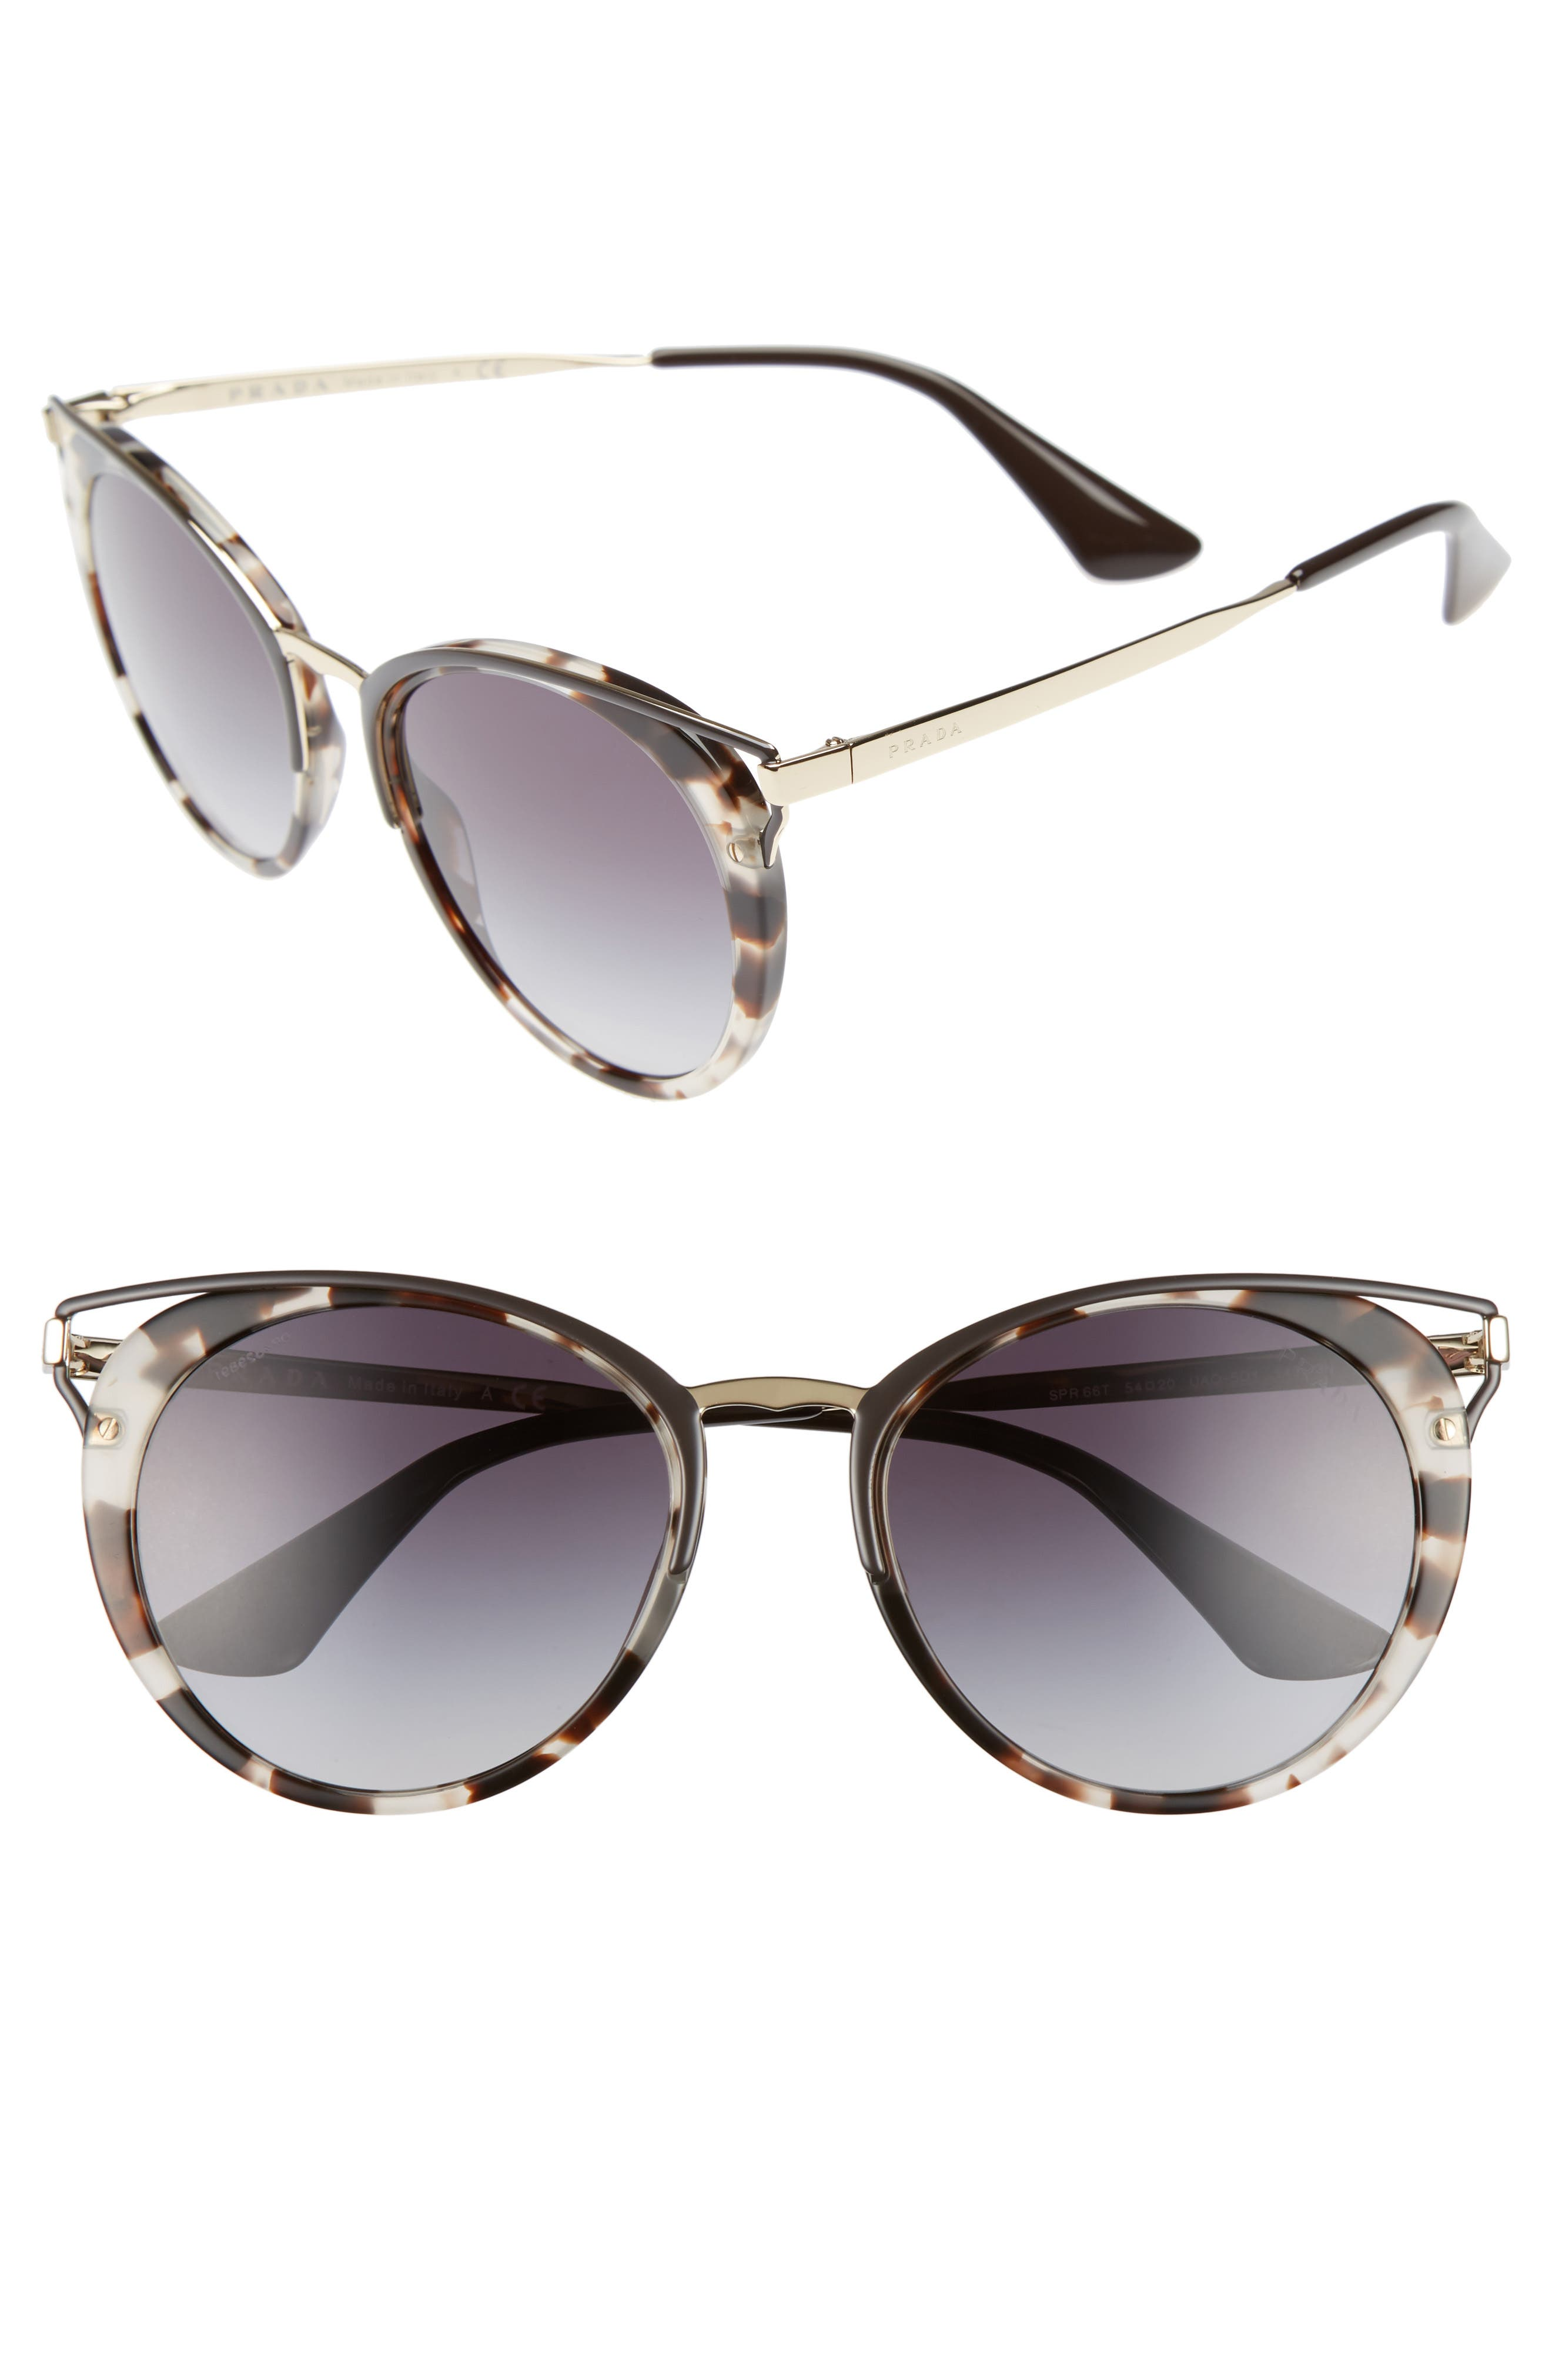 Prada 54mm Gradient Sunglasses